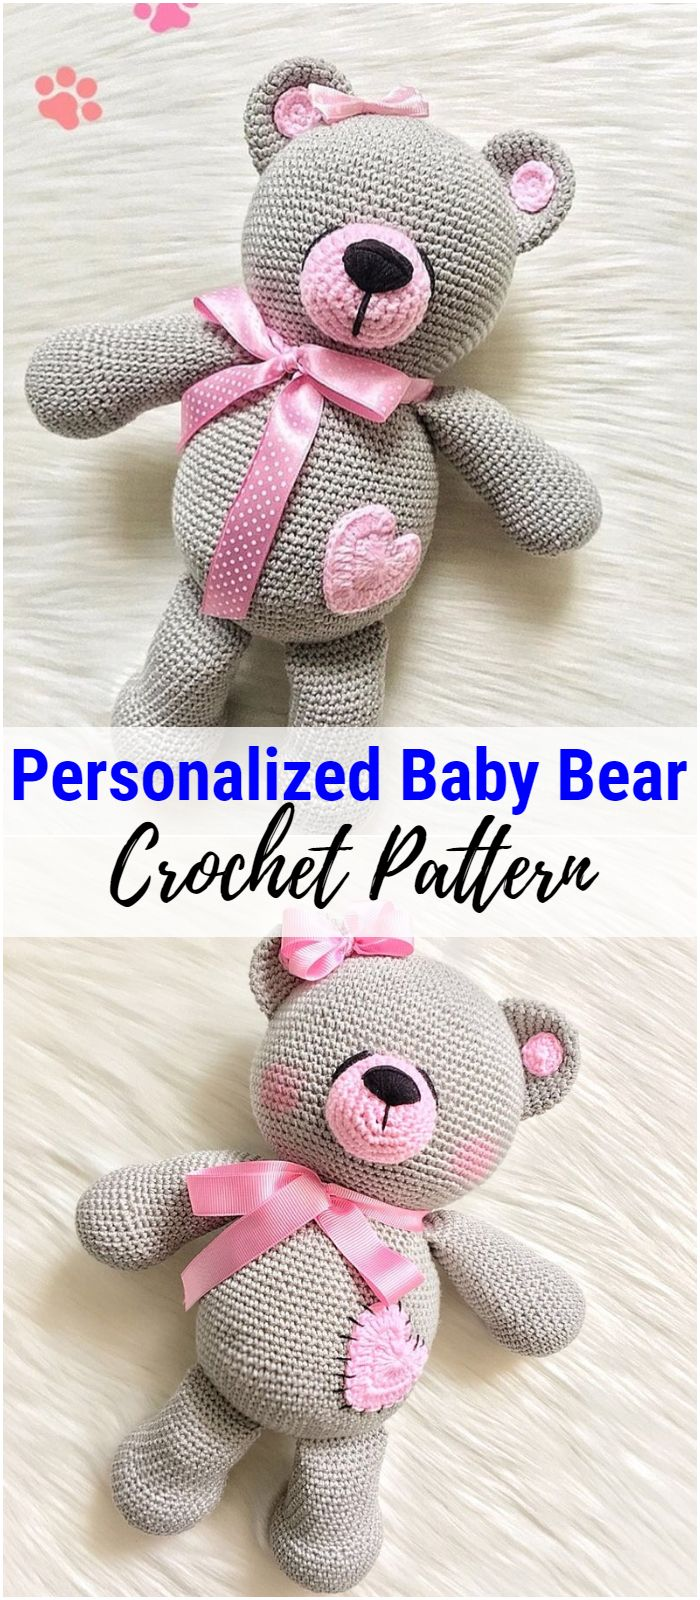 Personalized Crochet Baby Bear Toy